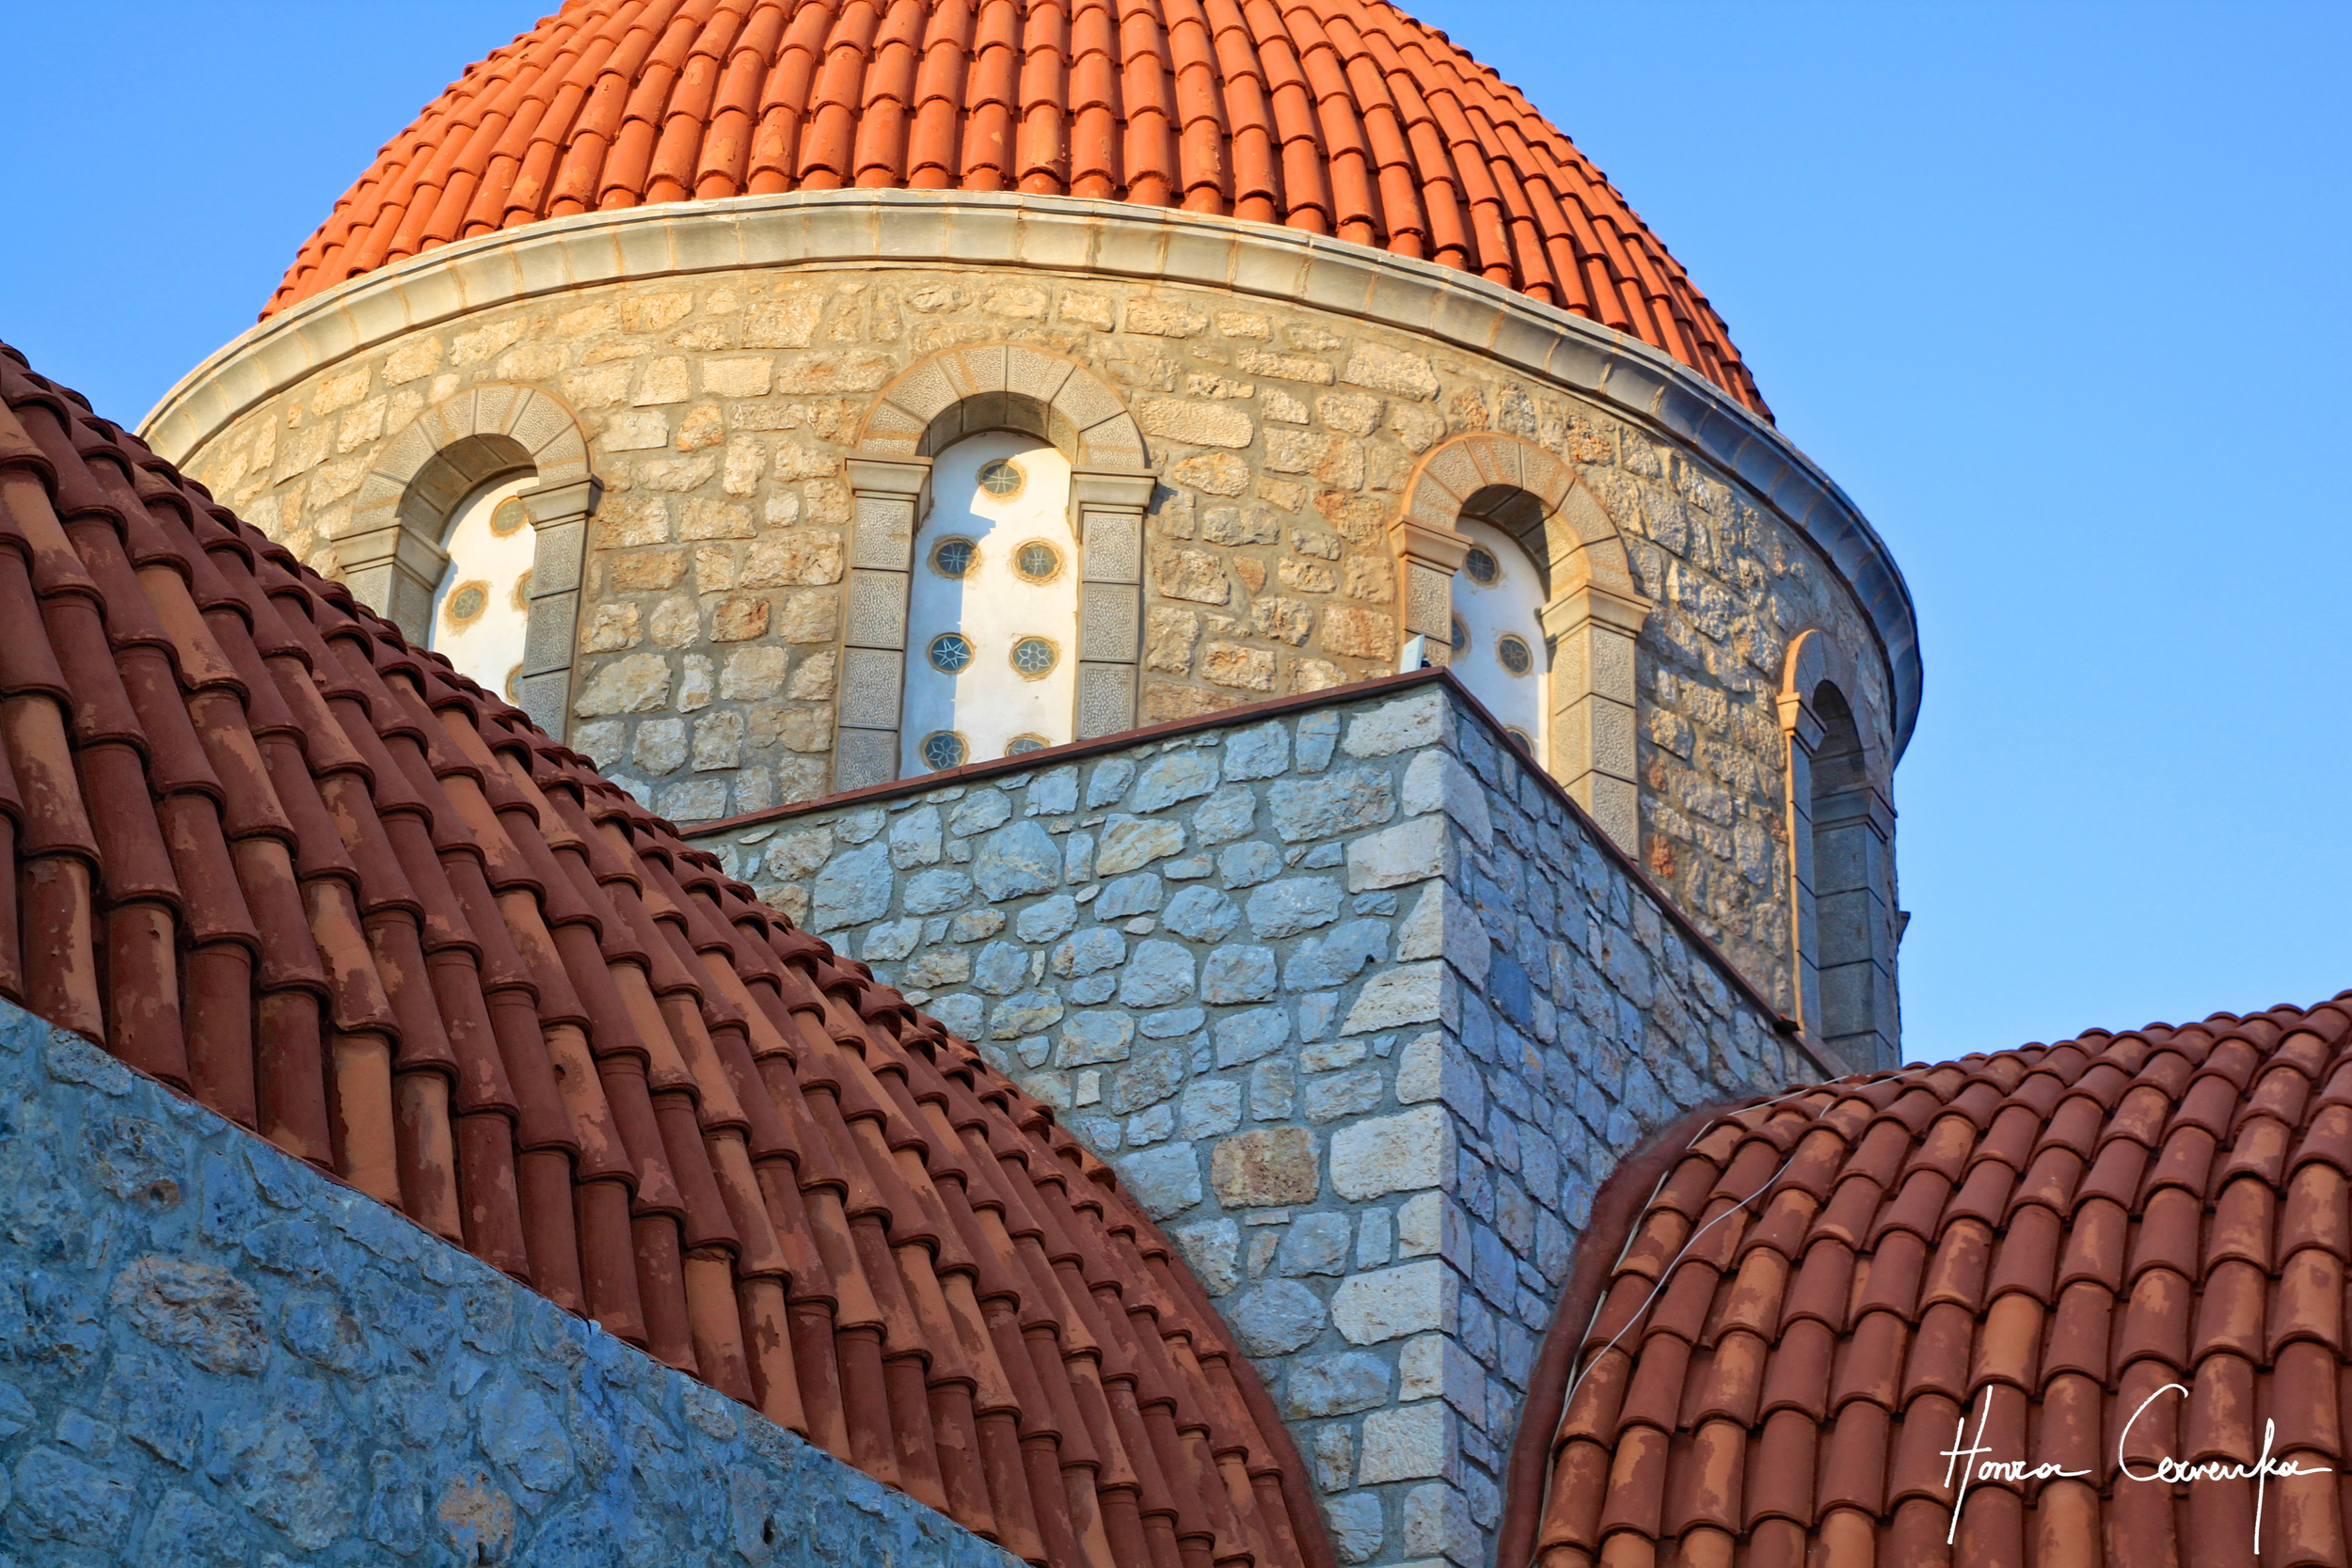 Top of the monastery church building.